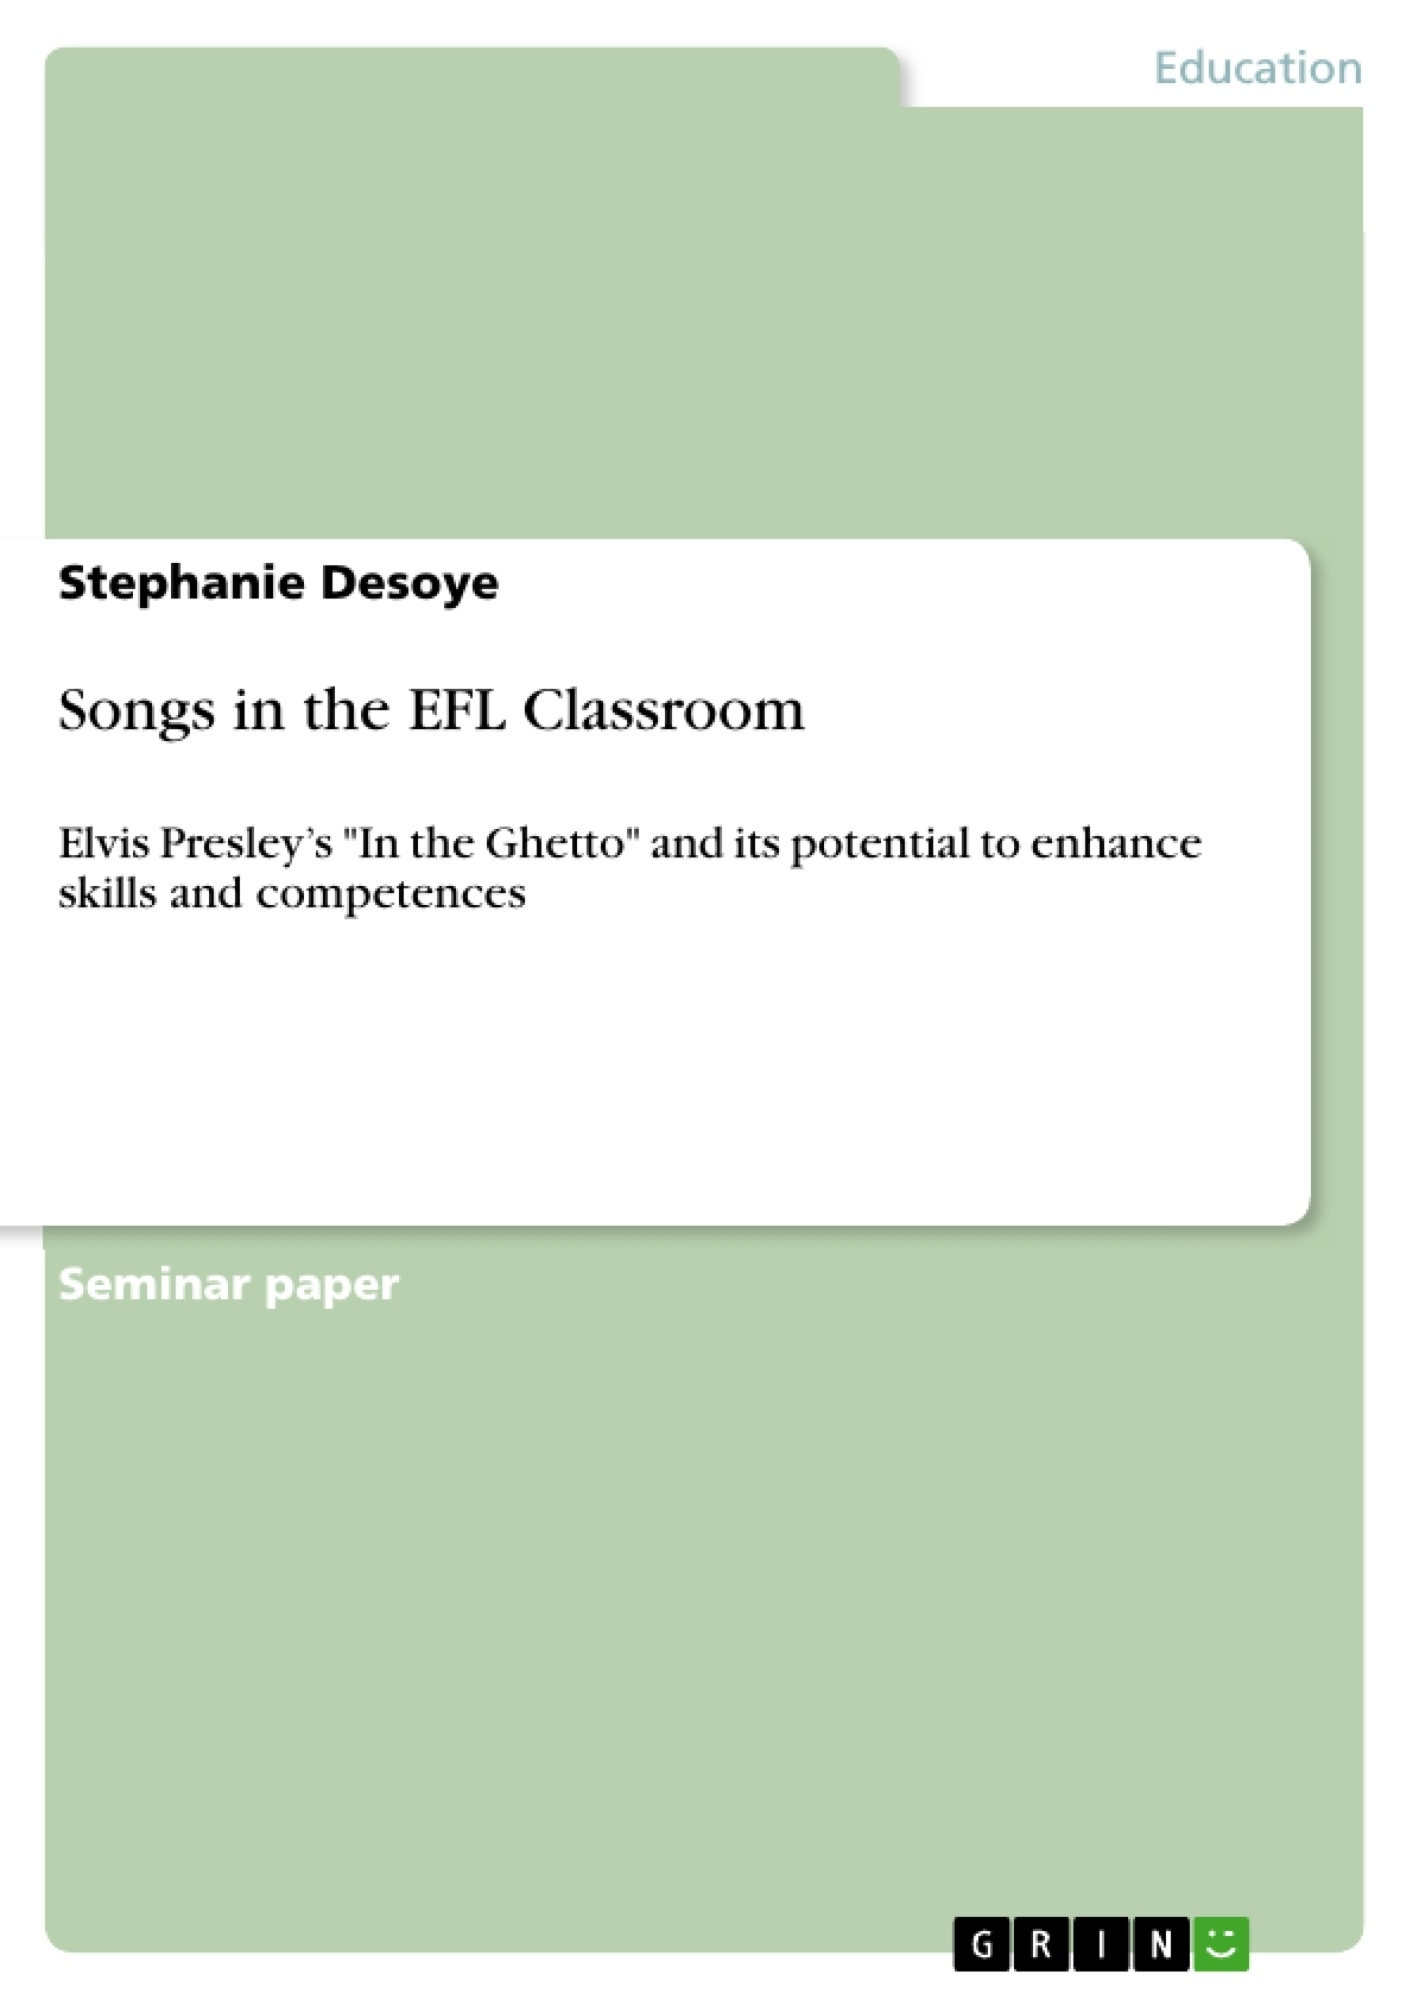 Title: Songs in the EFL Classroom